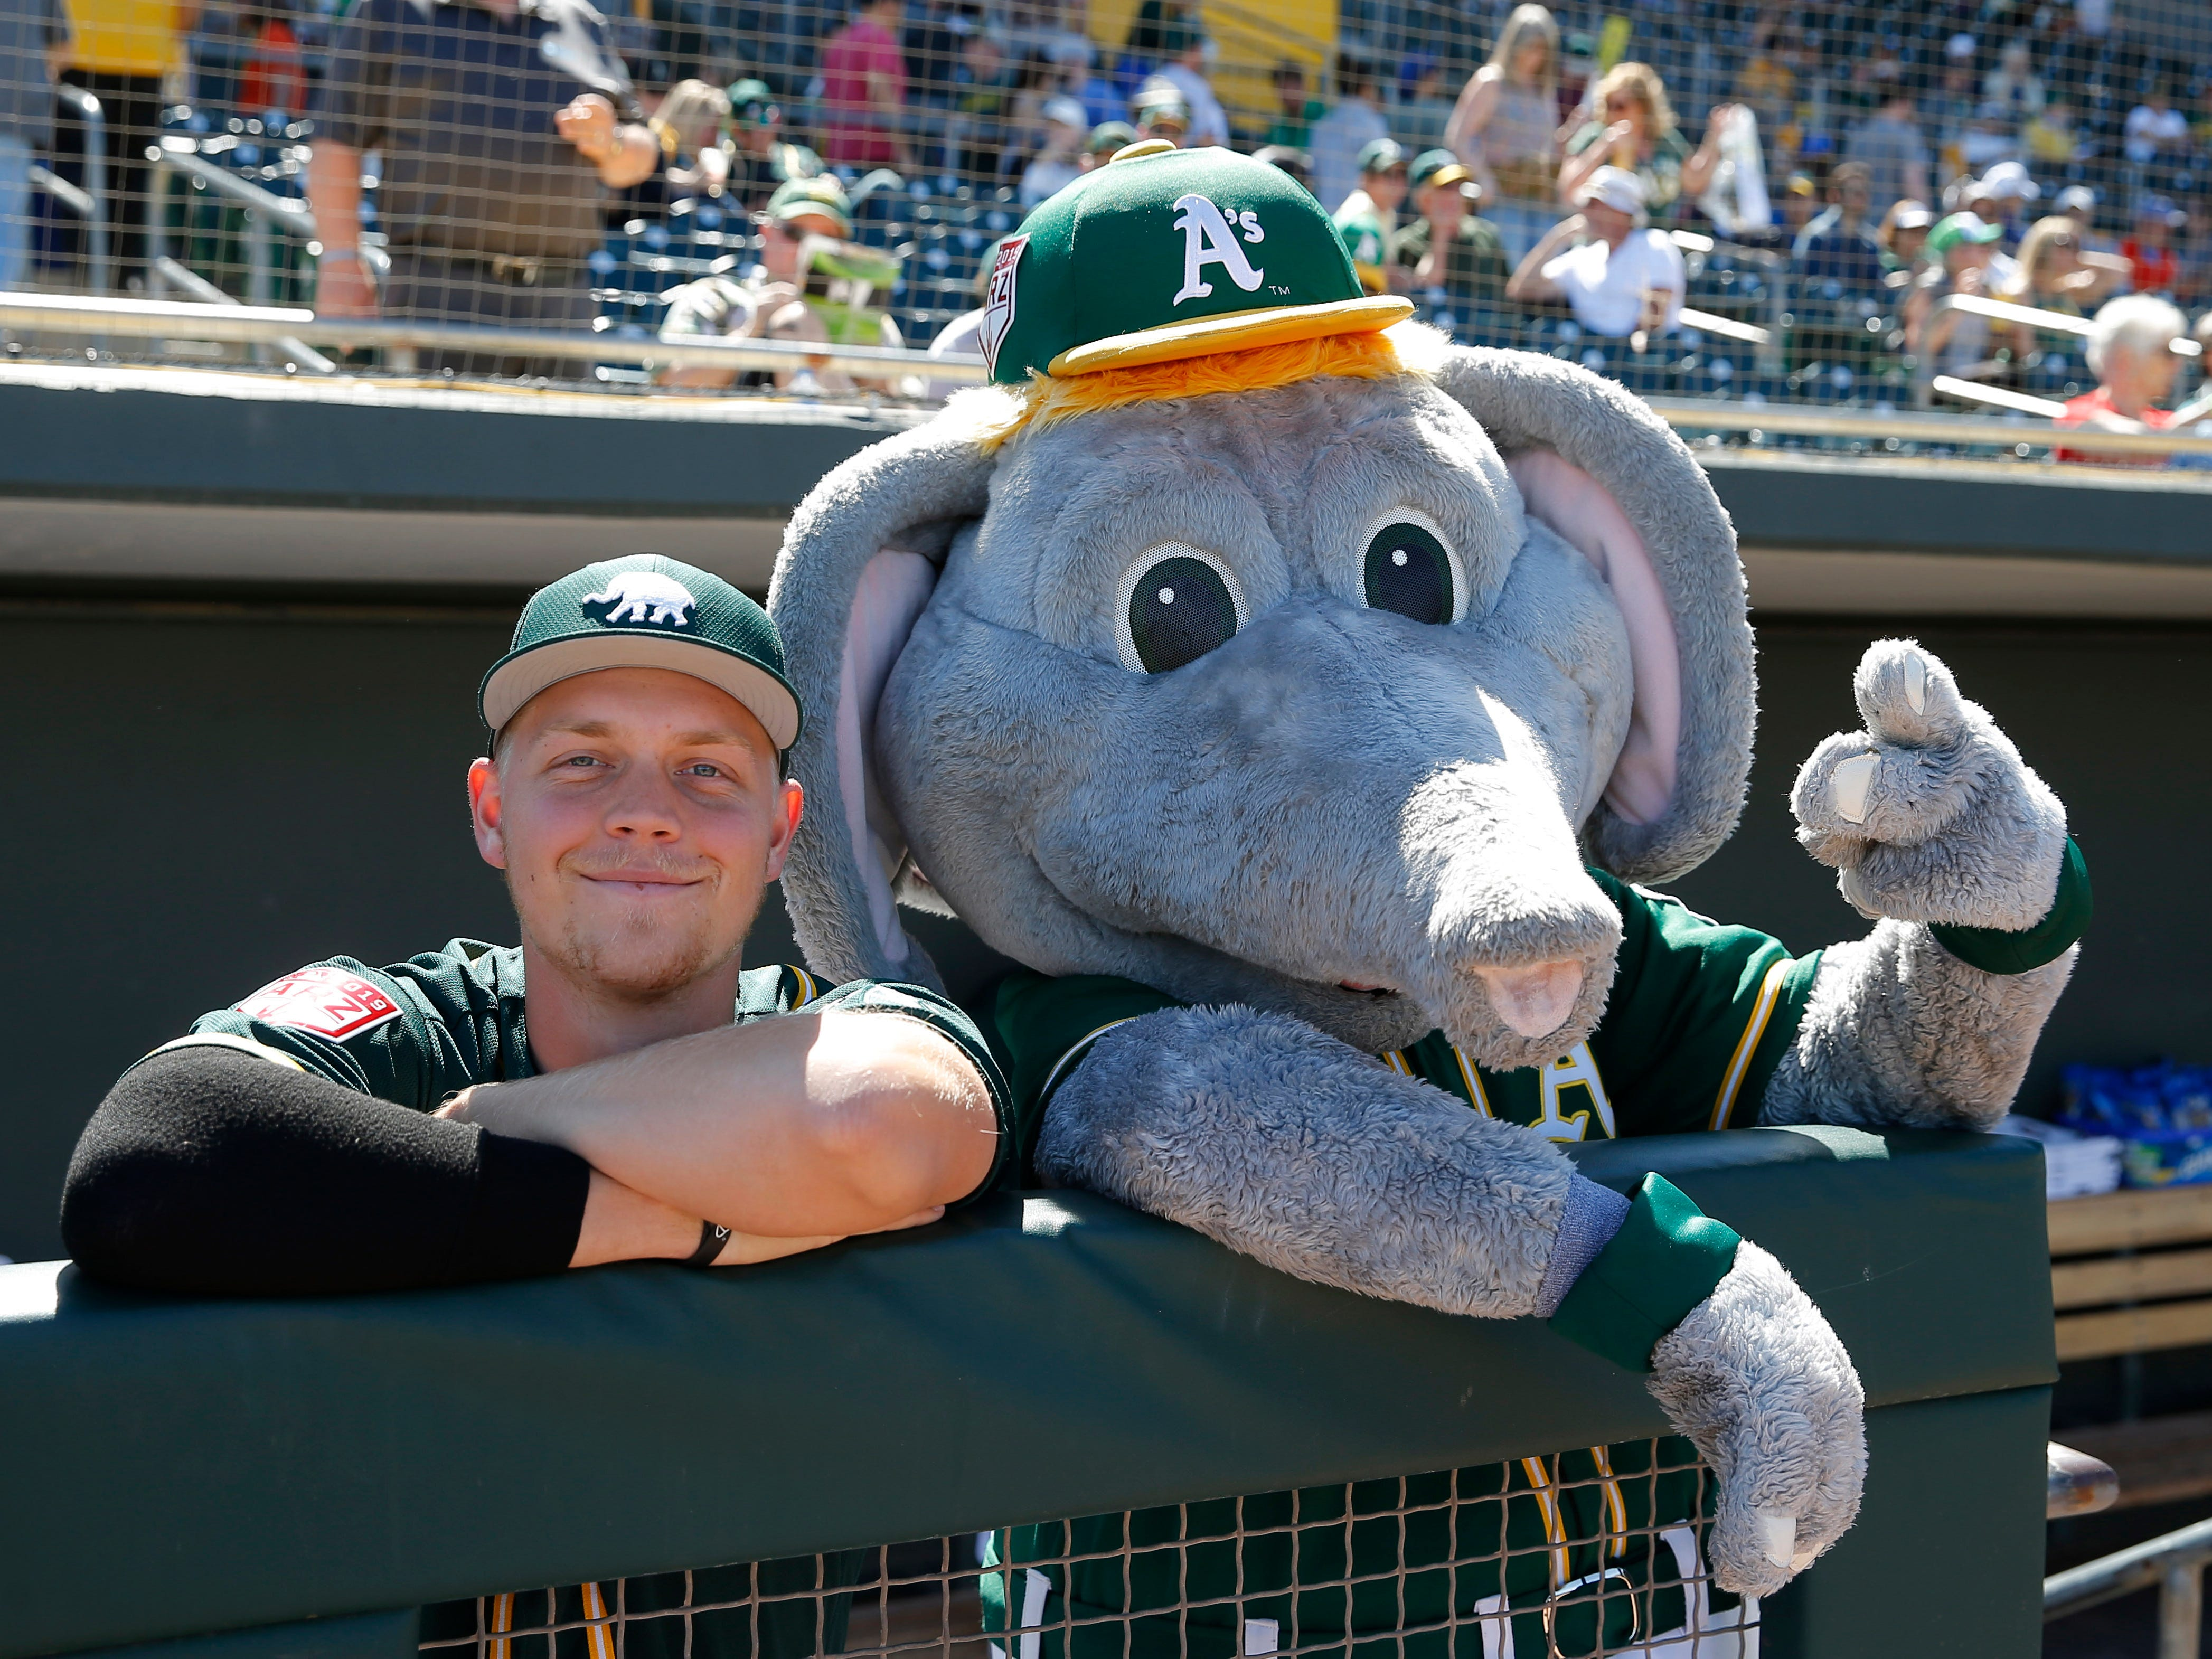 March 10: Athletics catcher JJ Schwartz and the Athletics mascot pose for a picture.